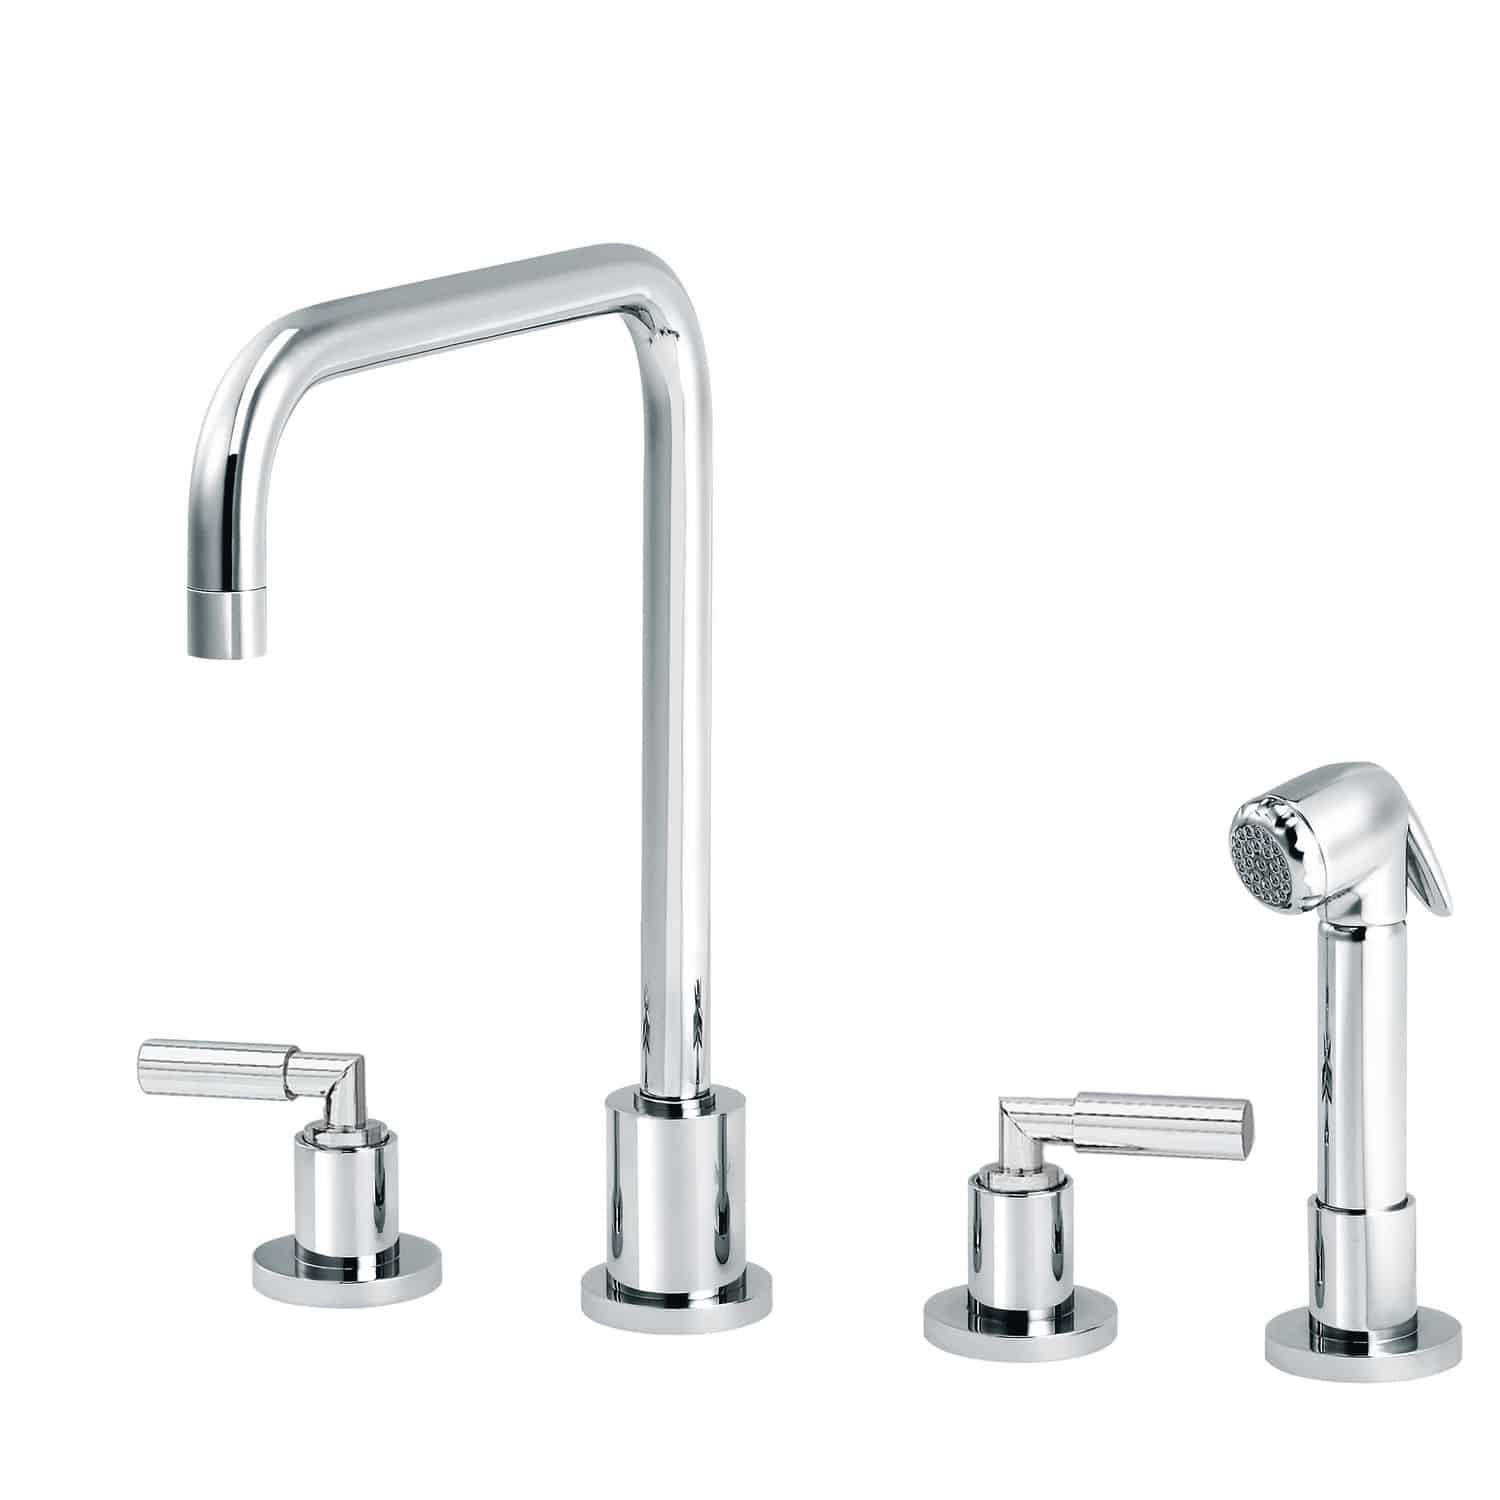 four hole kitchen faucets pictures of designs 独立式双把混合龙头 en metal chrome 厨房 4孔 cliff 4091 11 29 rvb